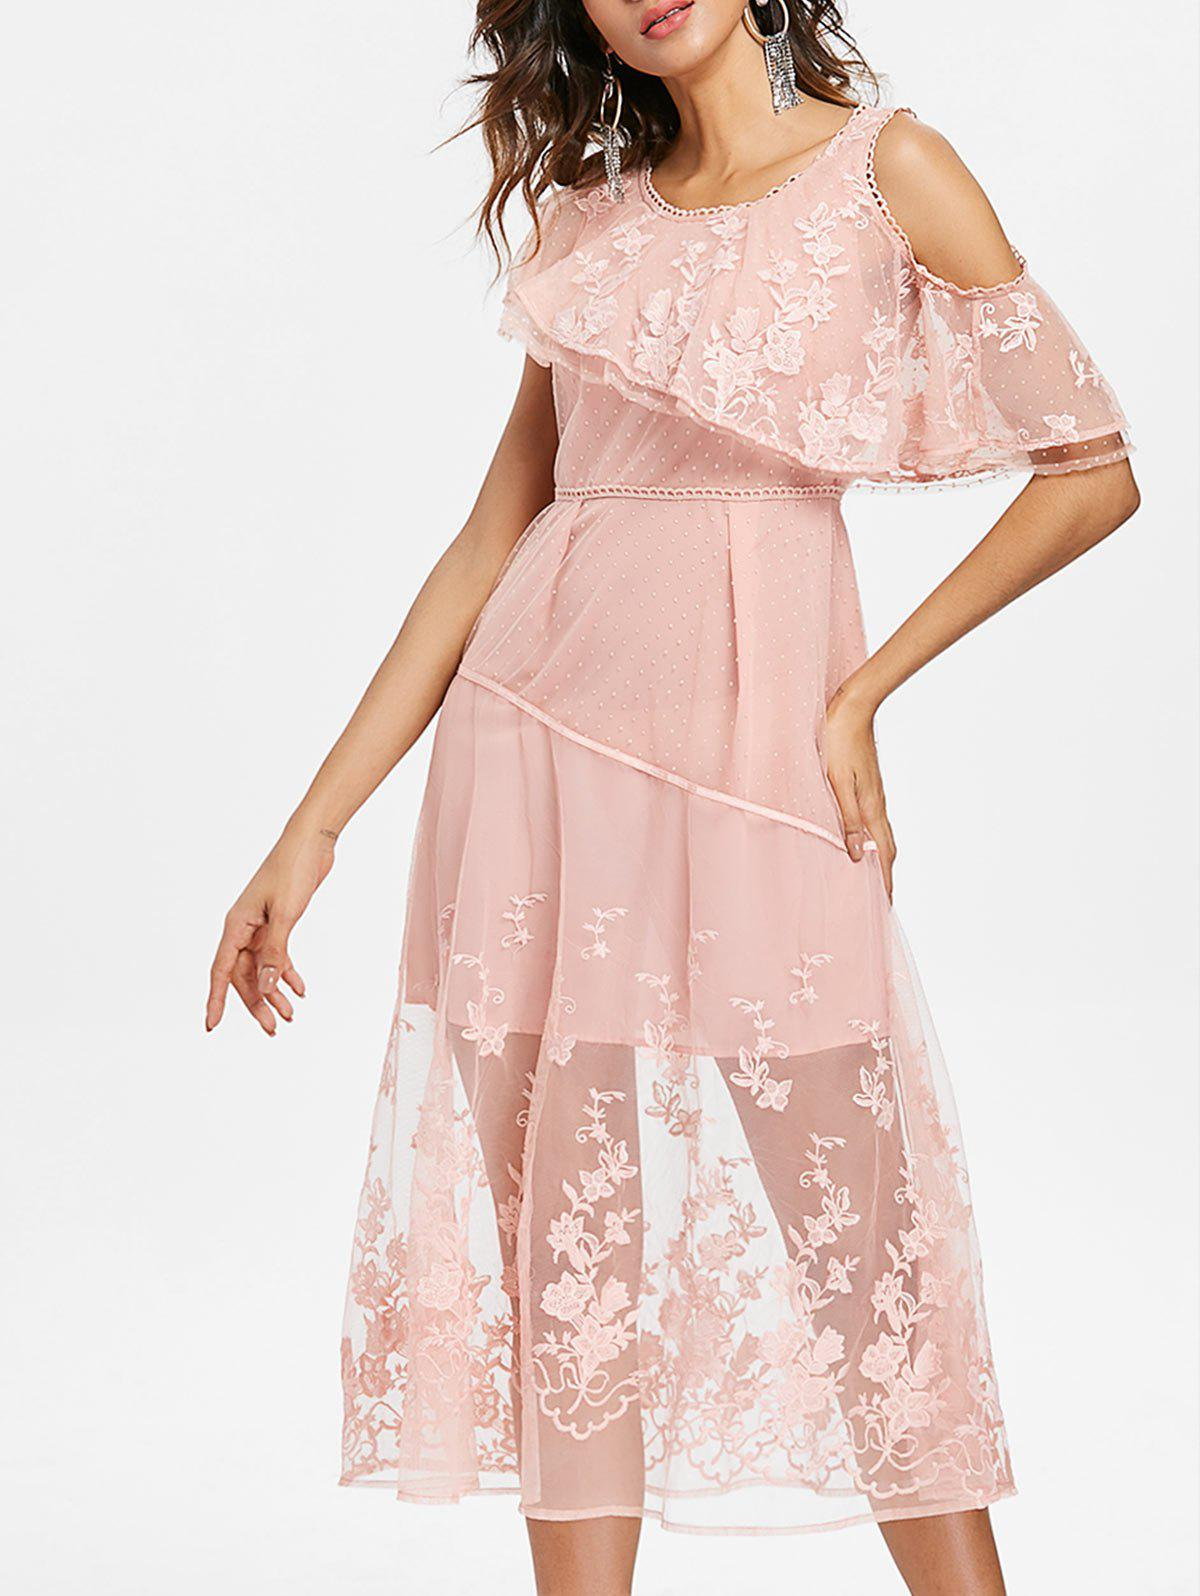 Embroidered Sheer Lace Midi Dress - LIGHT PINK 2XL